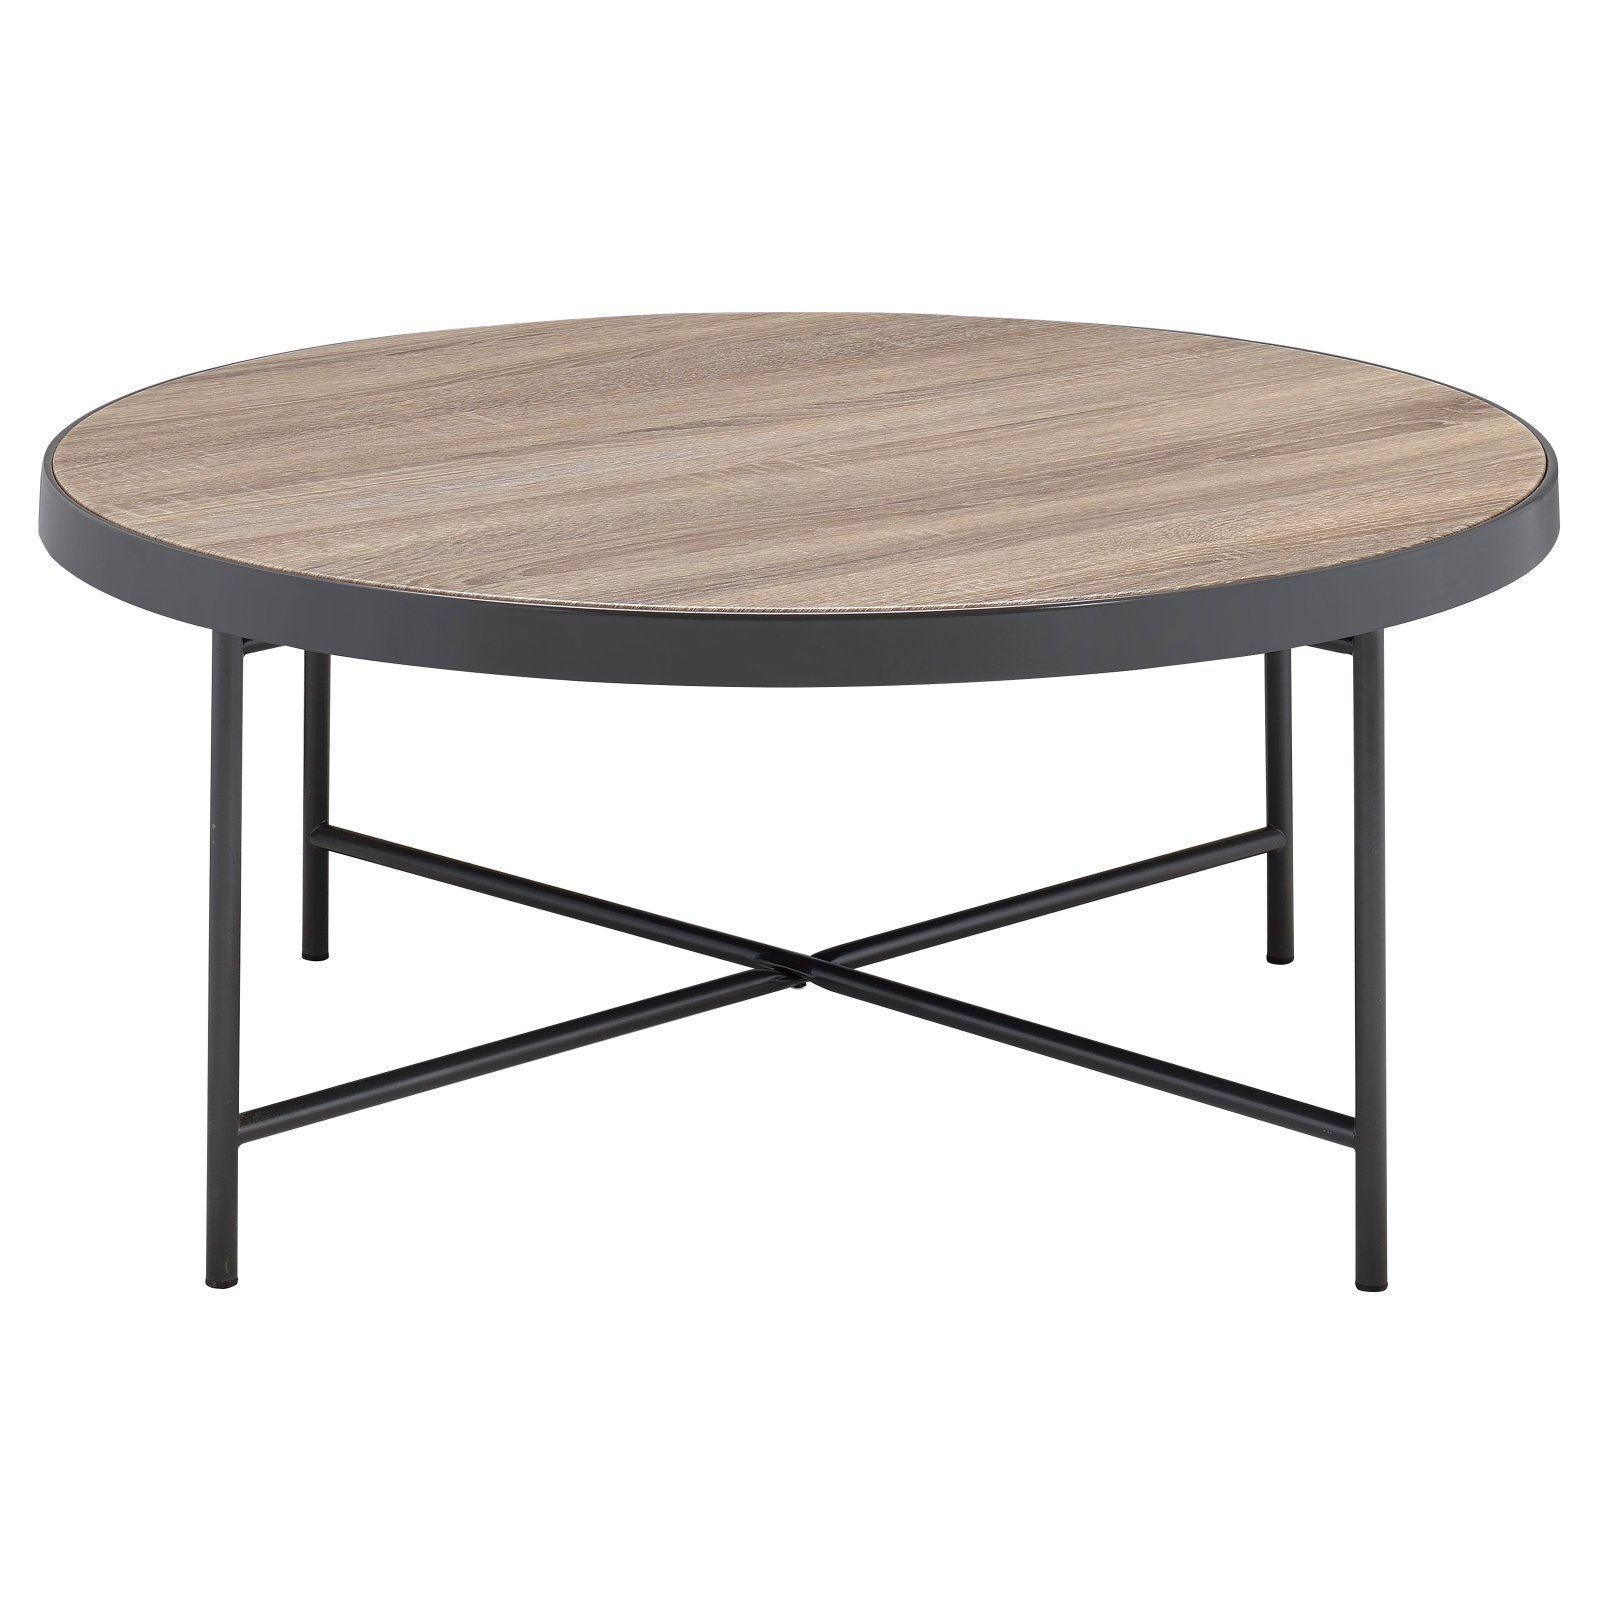 ACME Bage Coffee Table, Weathered Gray Oak